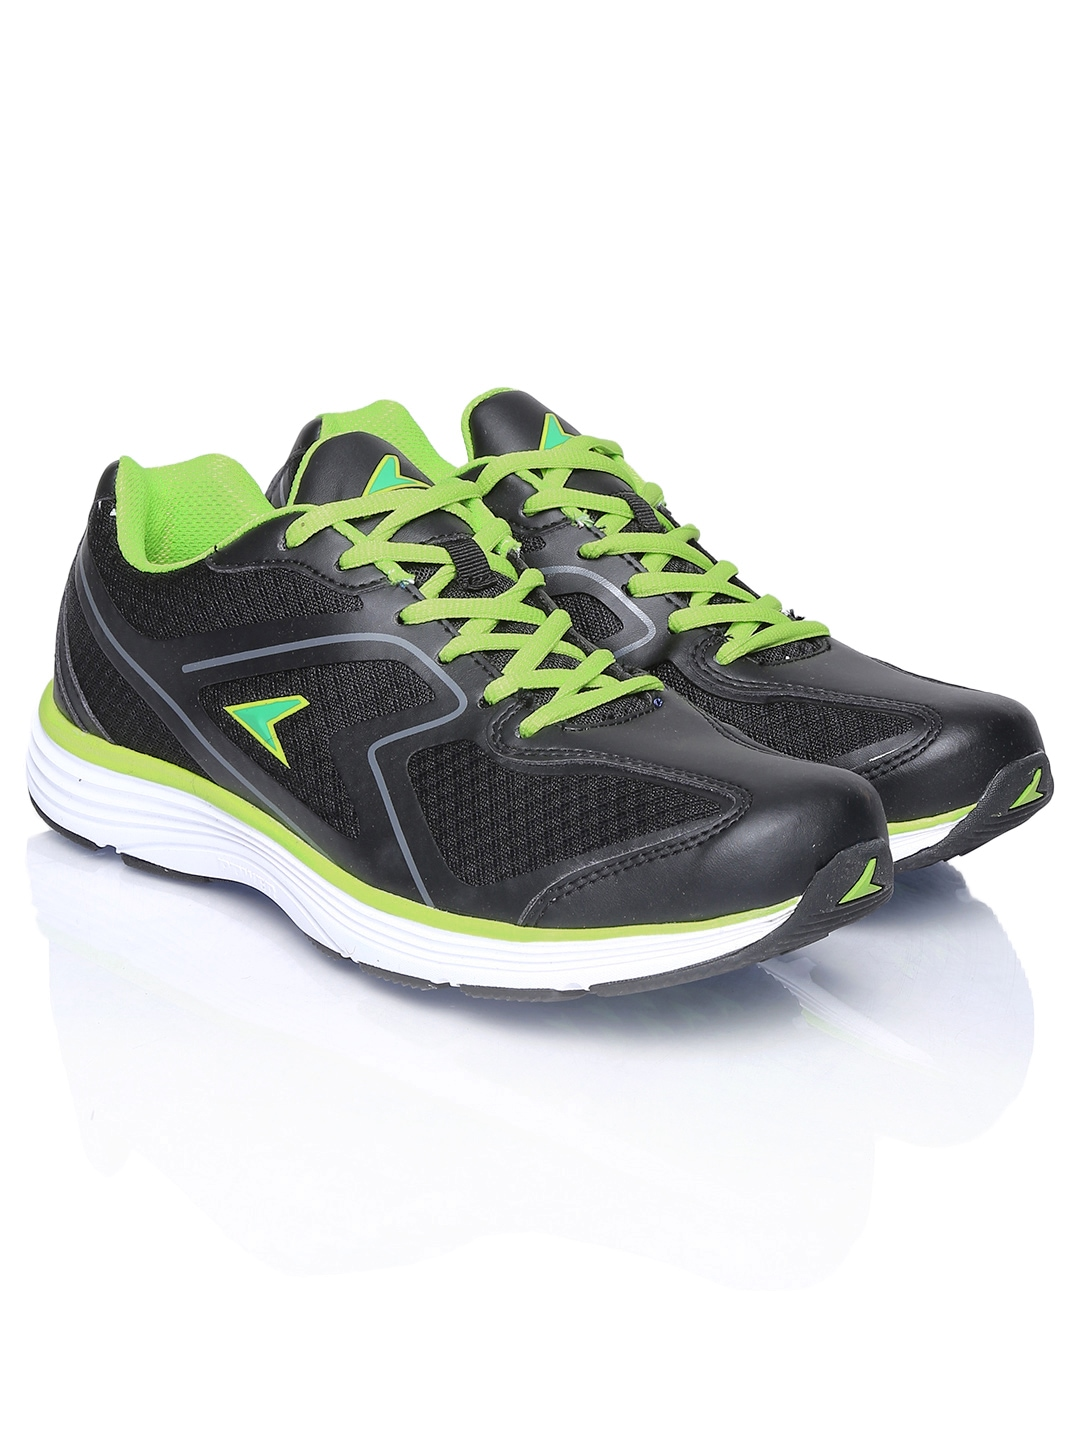 myntra power by bata black cosmo ind115 running shoes